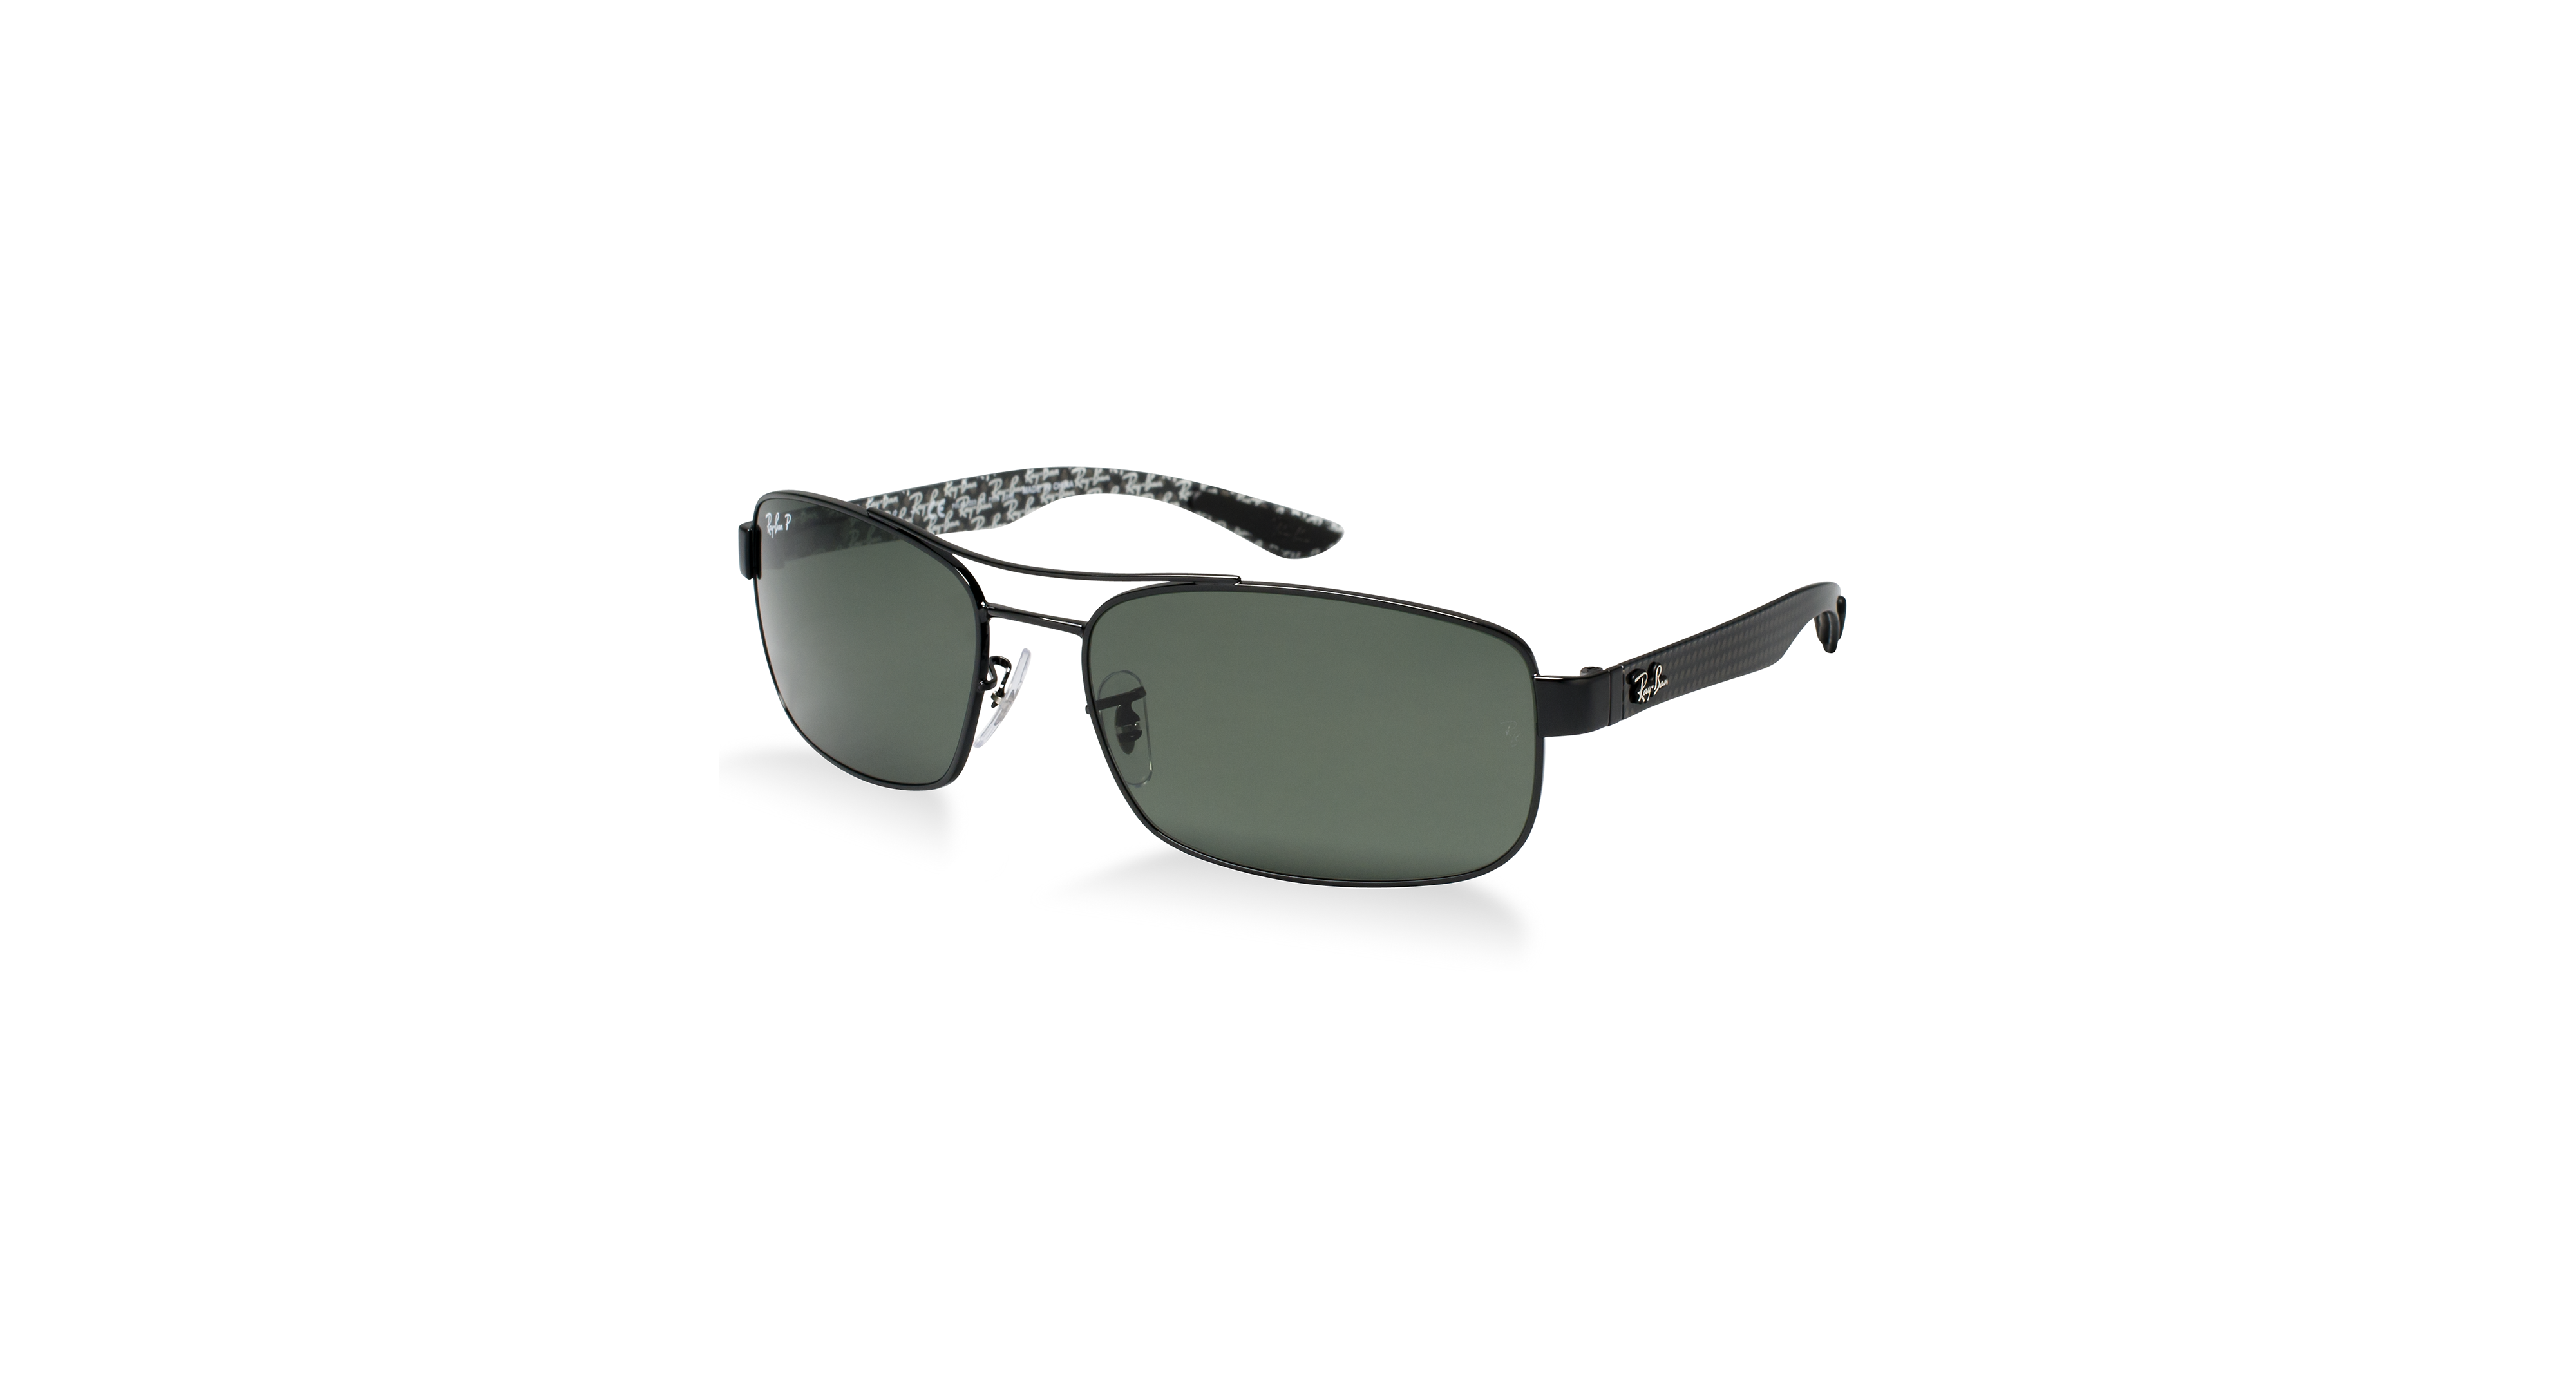 Ray-Ban Sunglasses, Ray-ban 0RB8316 62 002 N5   Products   Pinterest ... 5e425418cb42